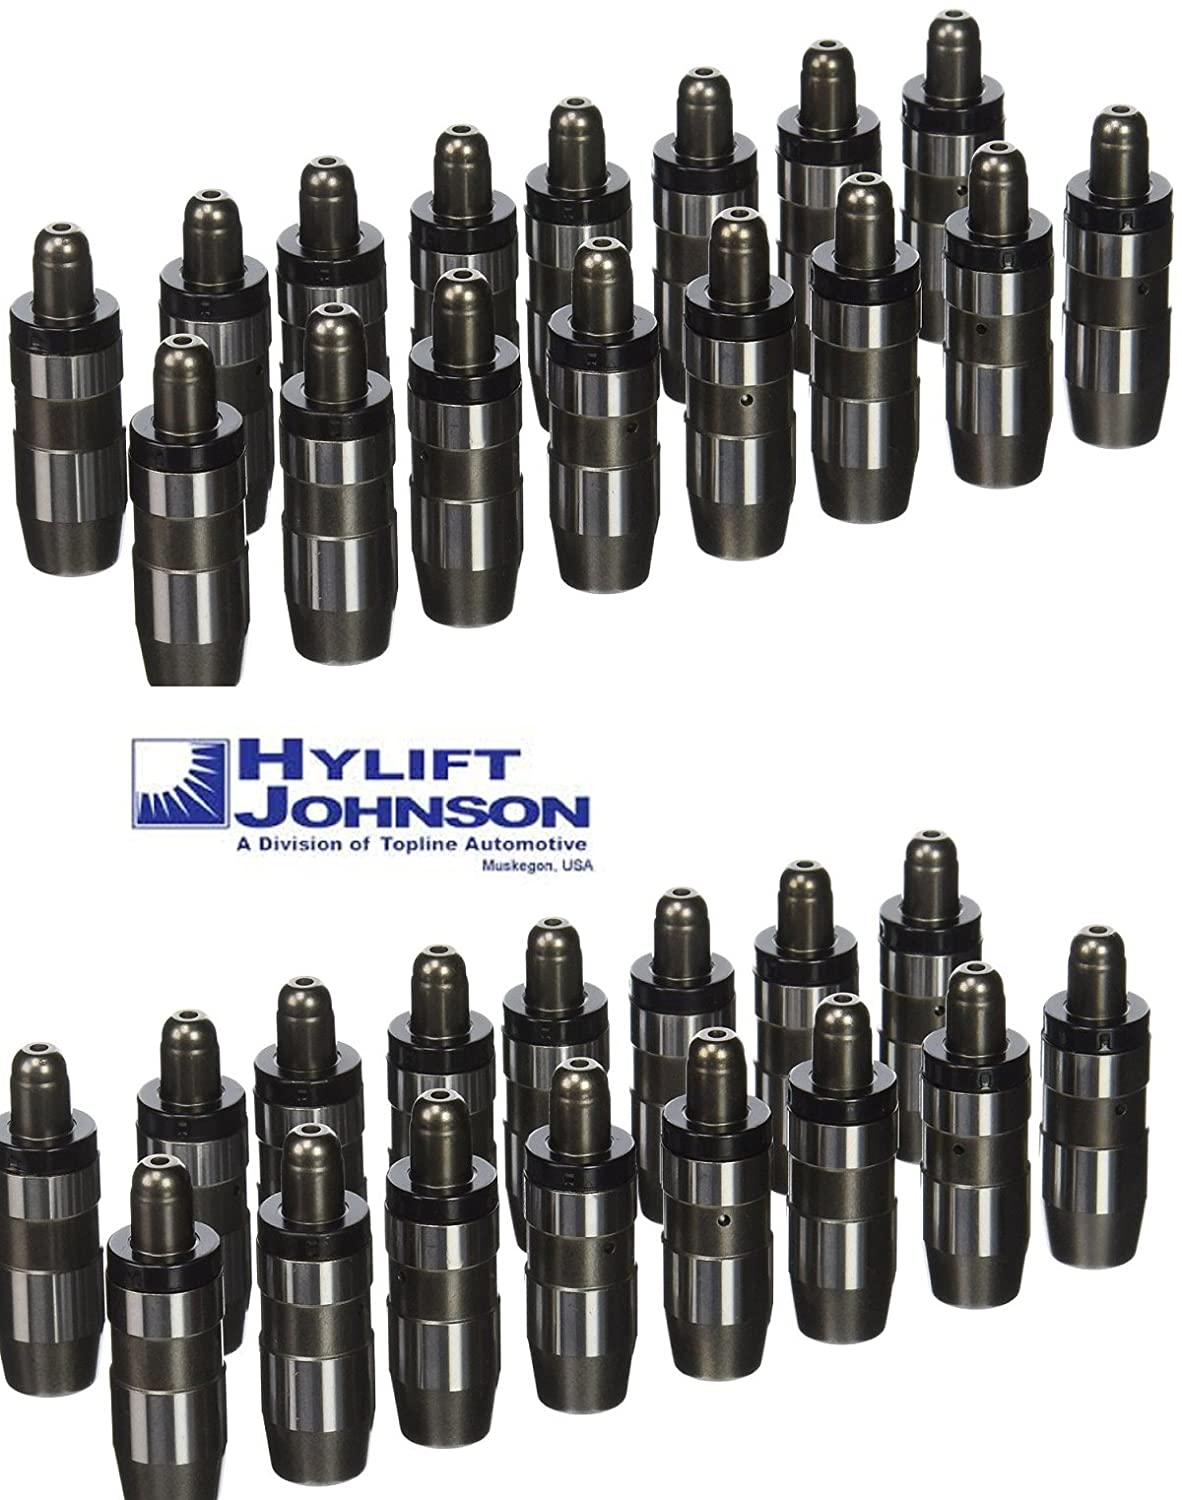 Ford Mercury 4.6L 4.6 5.4 5.4L DOHC 32 Valve Lifters Set of (32) (For 32V engines) Hylift Johnson